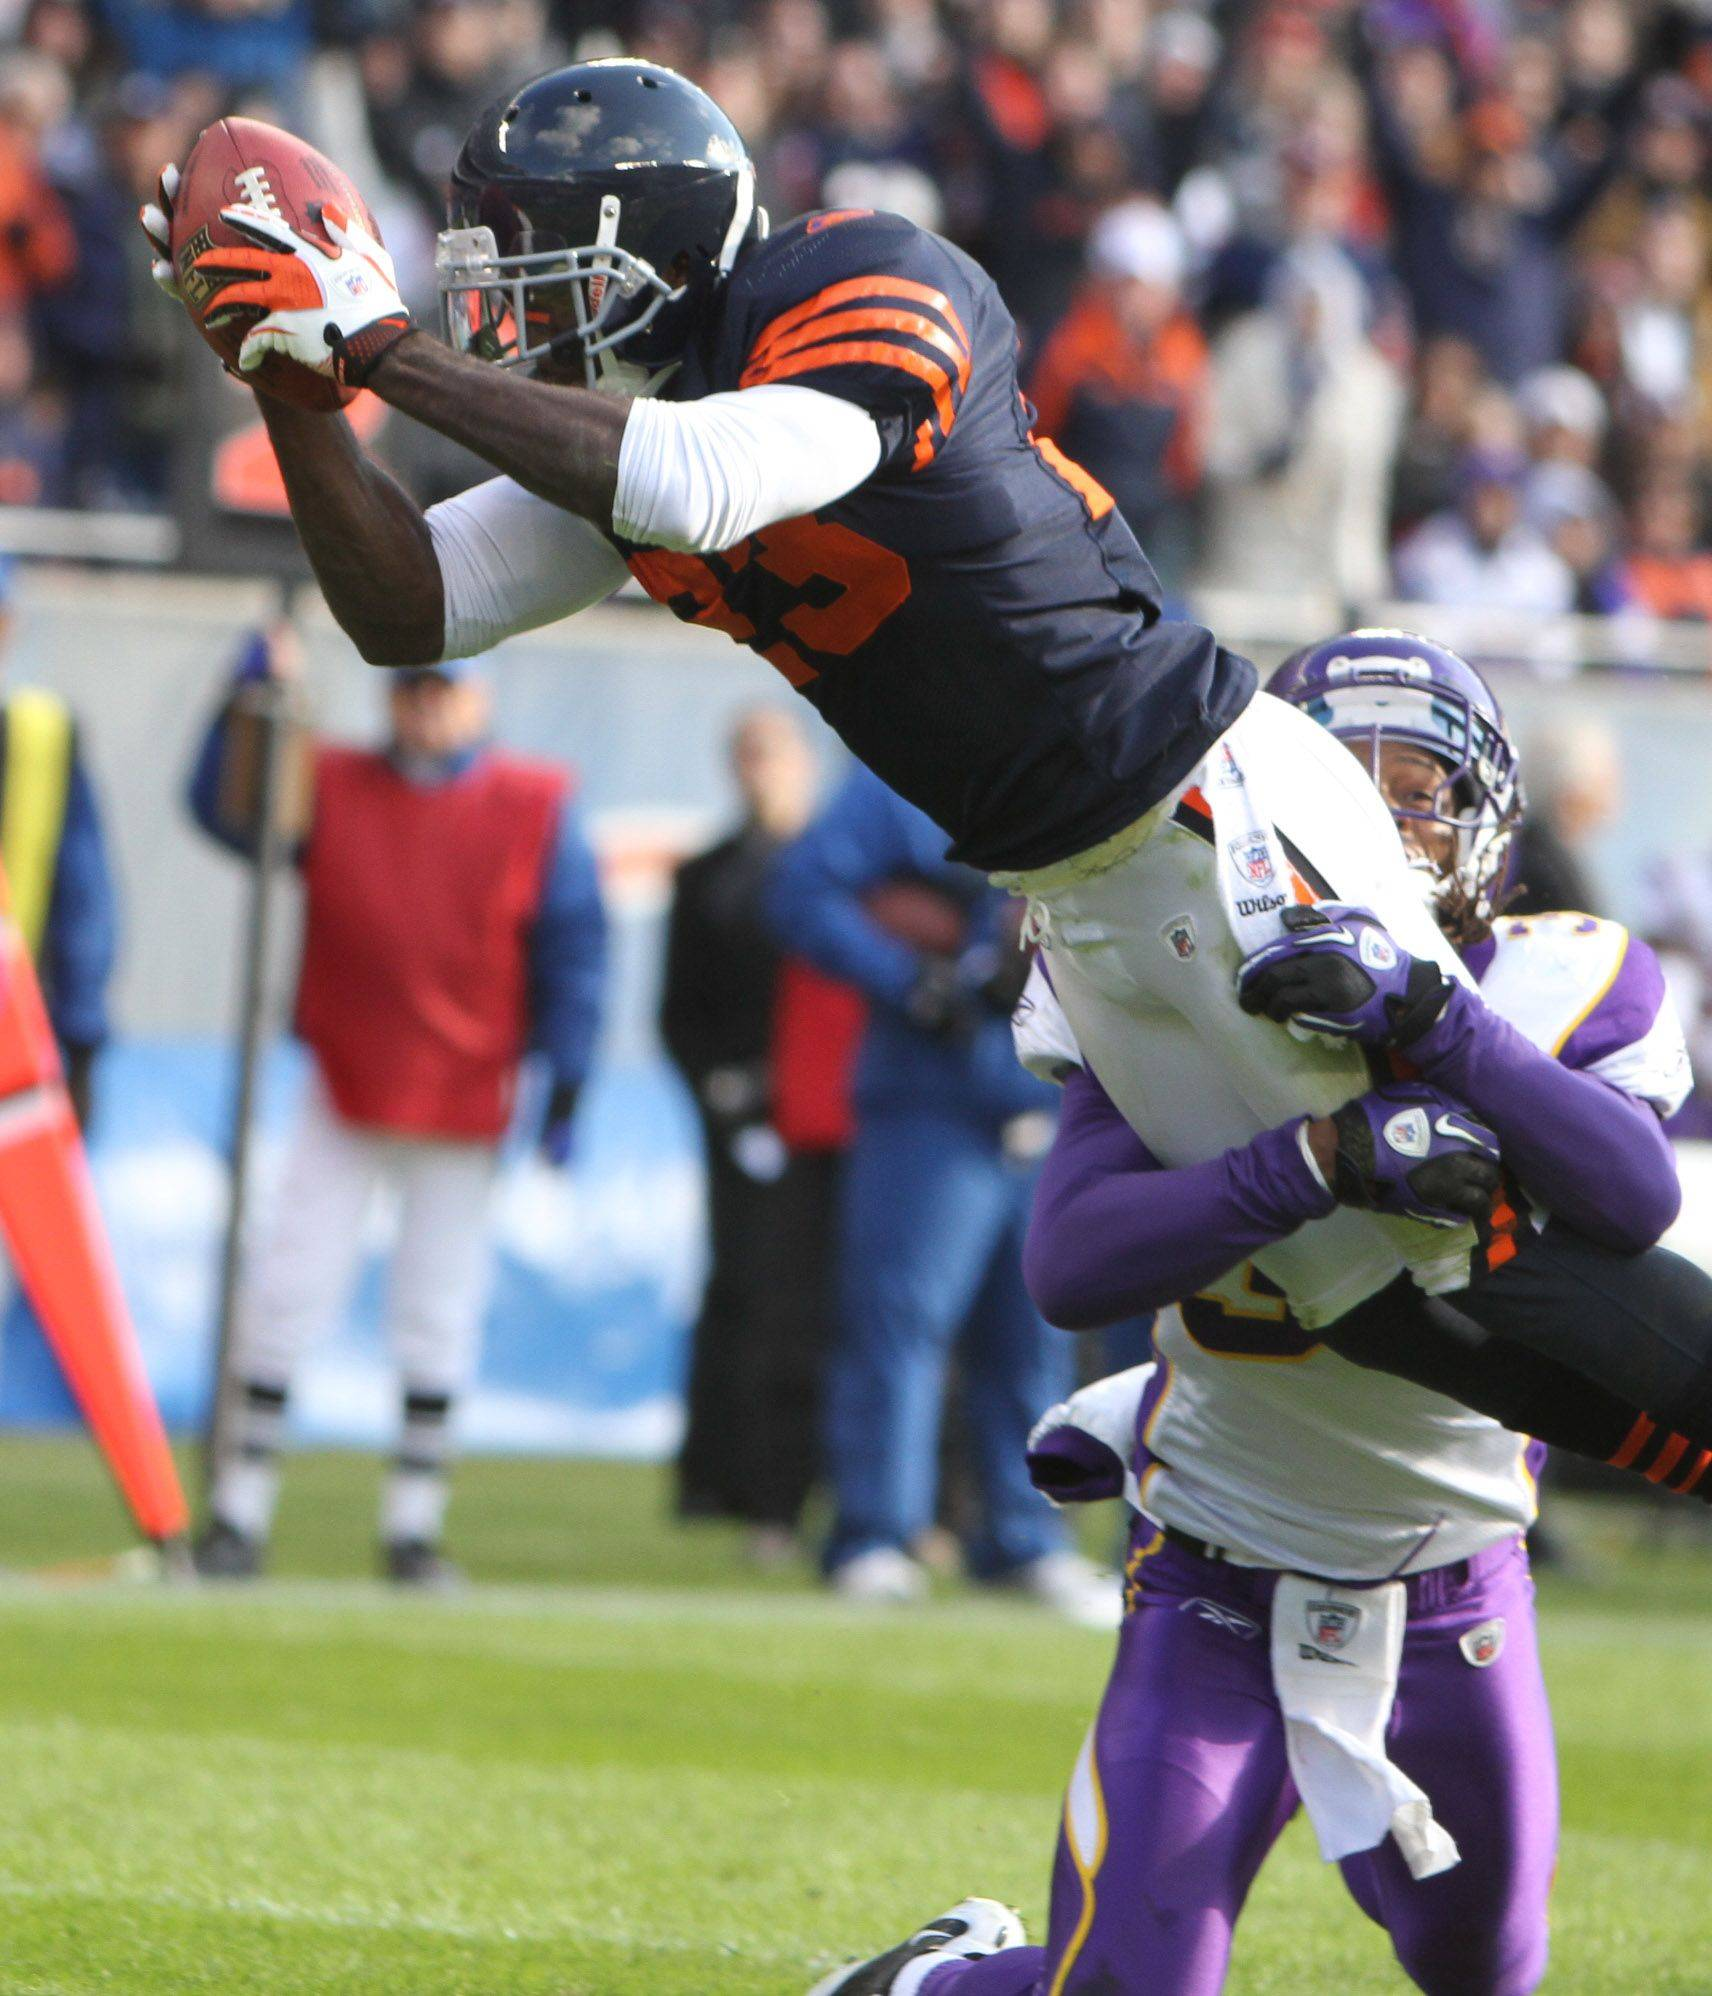 Chicago Bears' Devin Hester dives over the goal line as he is pulled down by Minnesota Vikings' Chris Cook at the end of the first half.